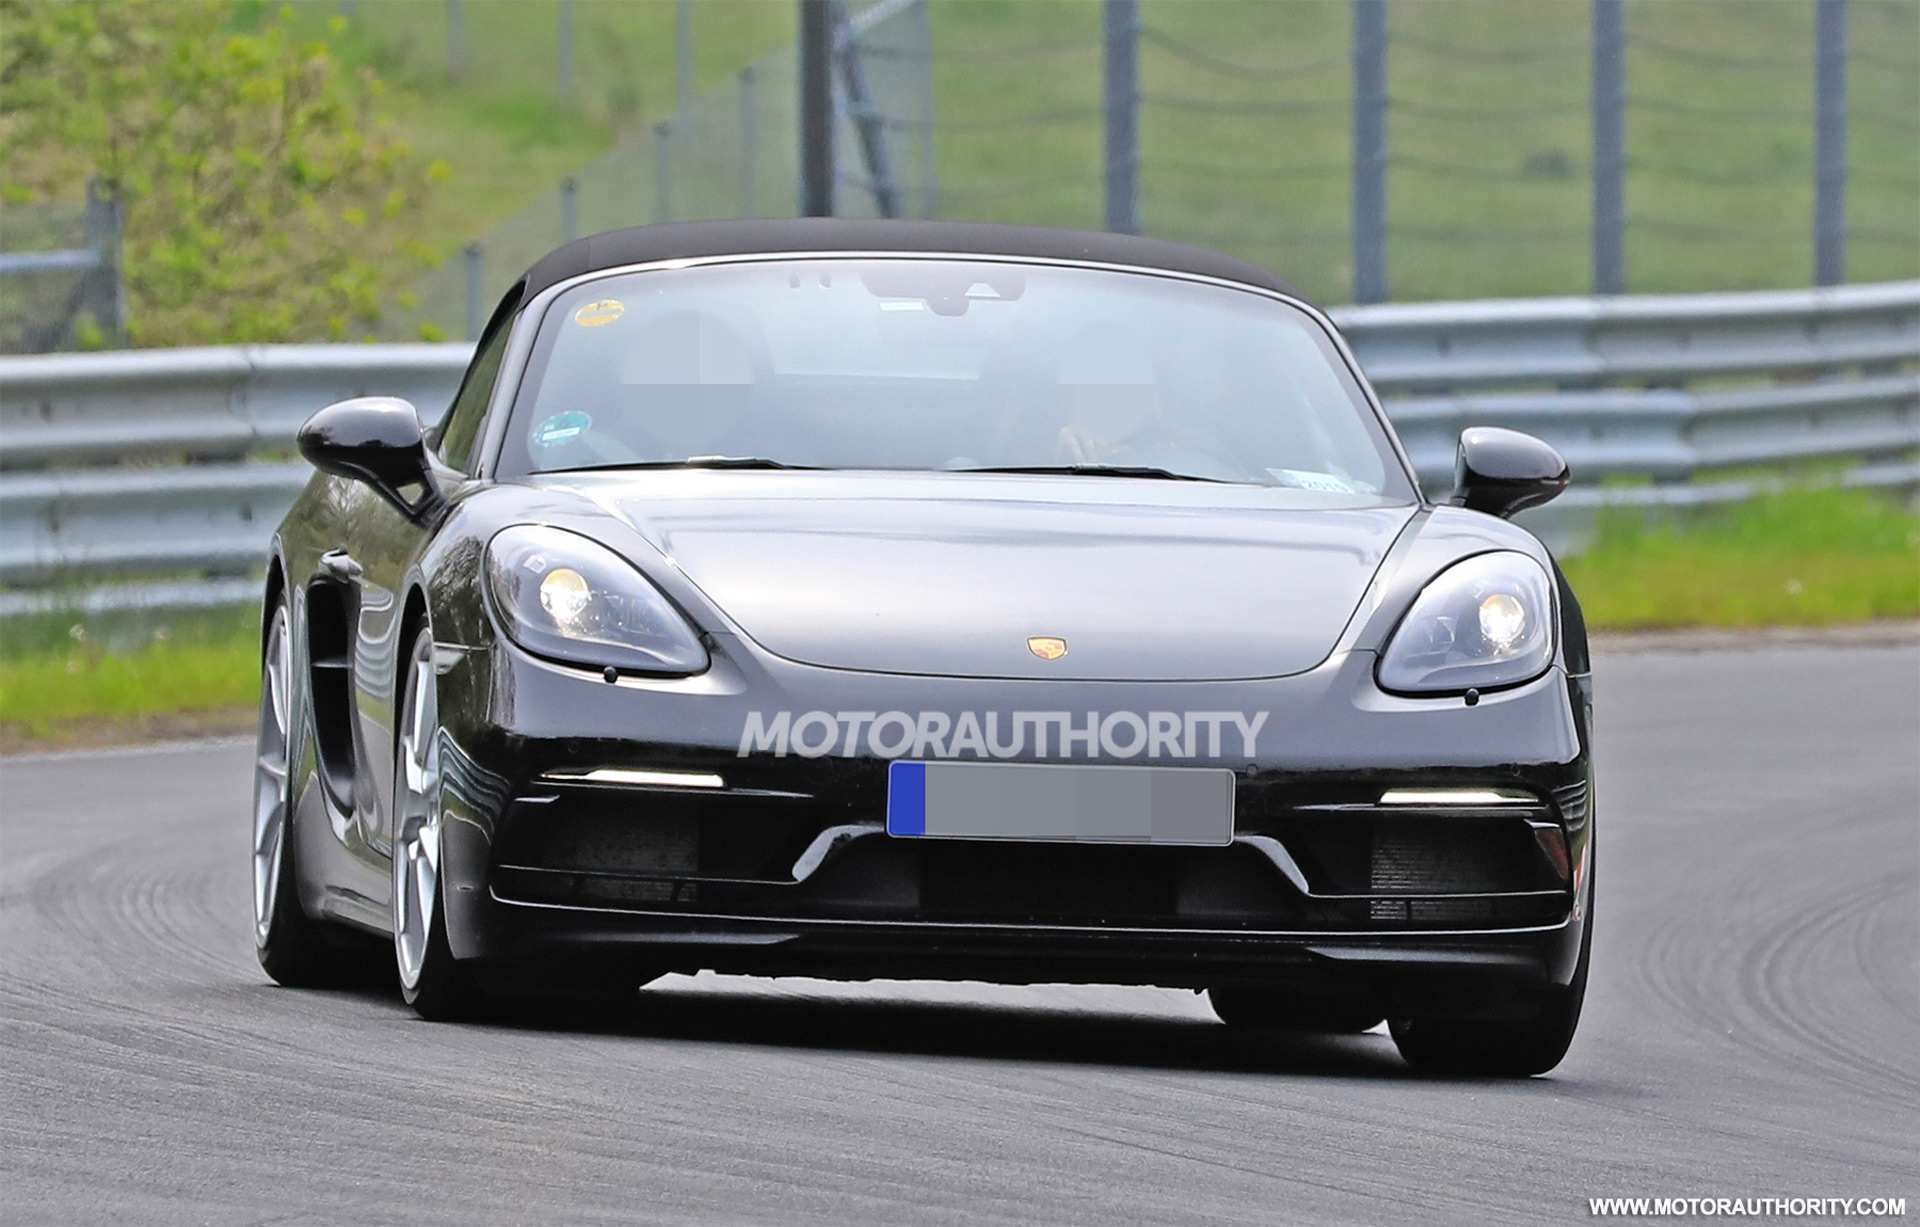 73 The Best 2020 Porsche Boxster S Reviews